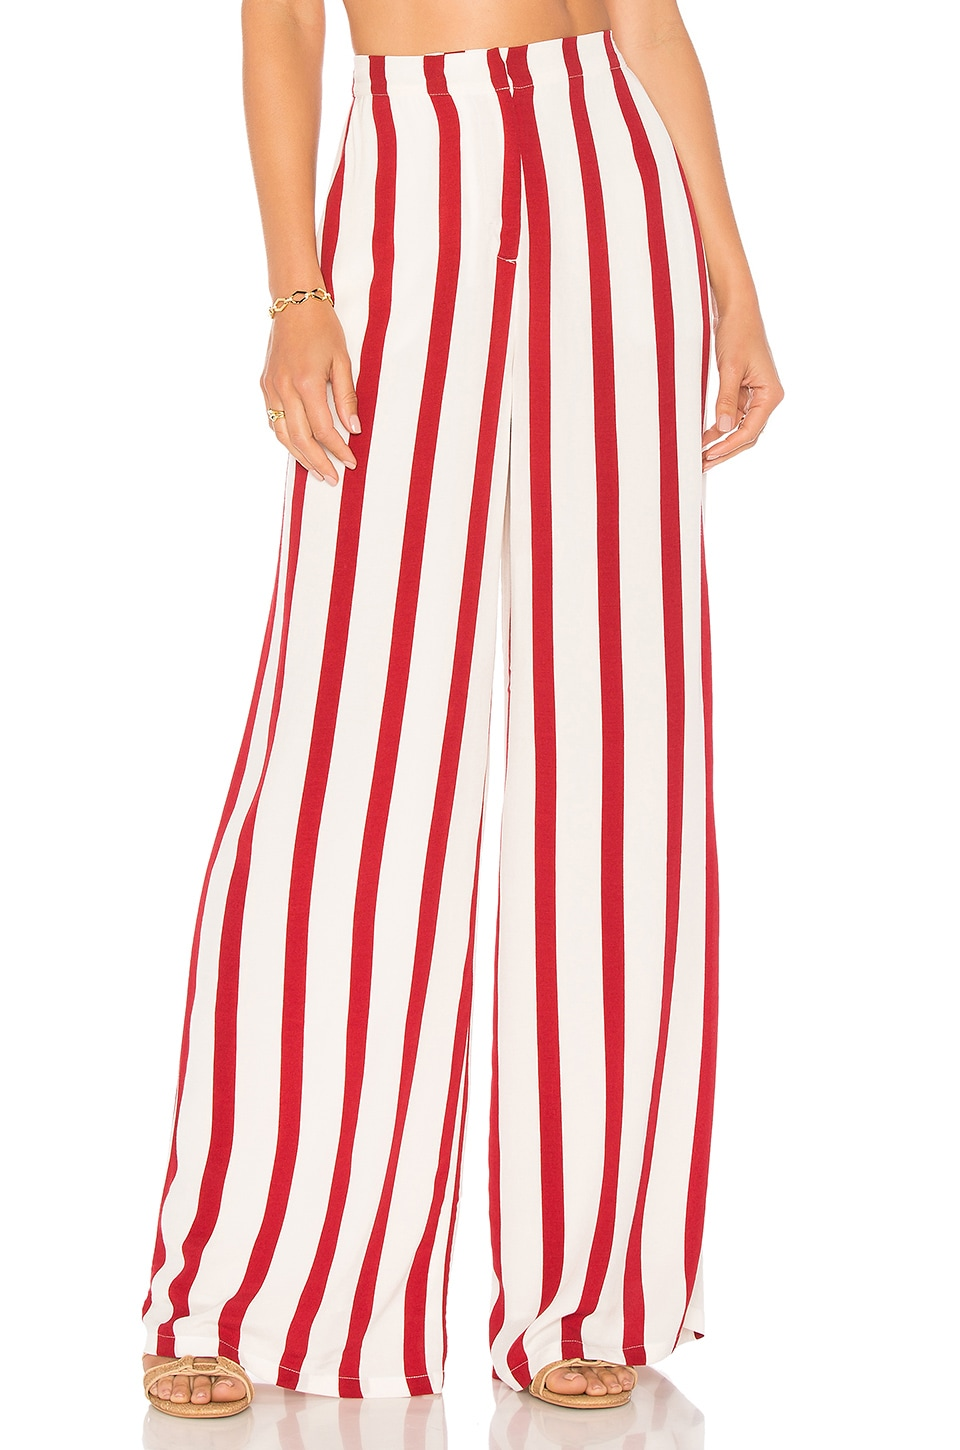 House of Harlow 1960 x REVOLVE Mona Pant in Carmine